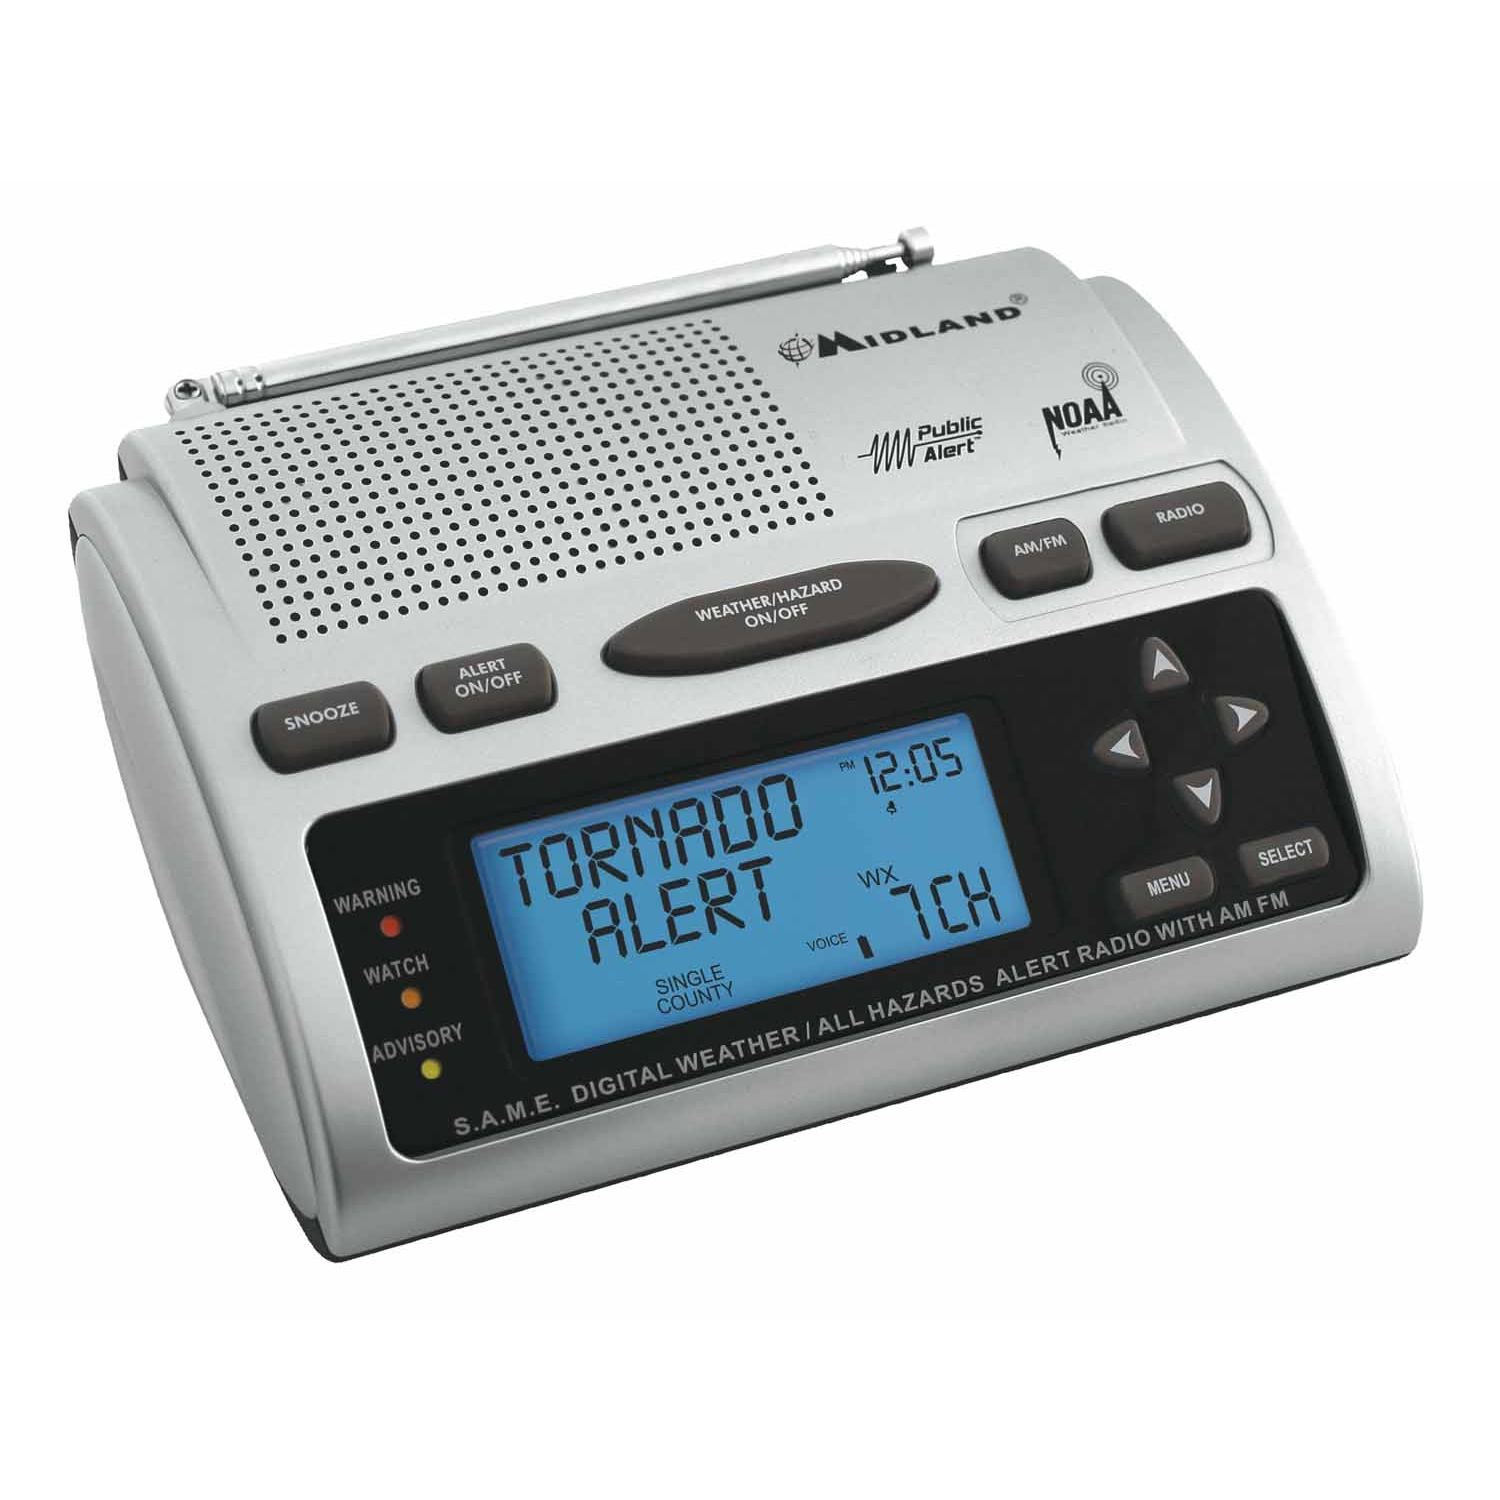 WR300 - Midland Radio Weather Monitor With All-Hazards Alert